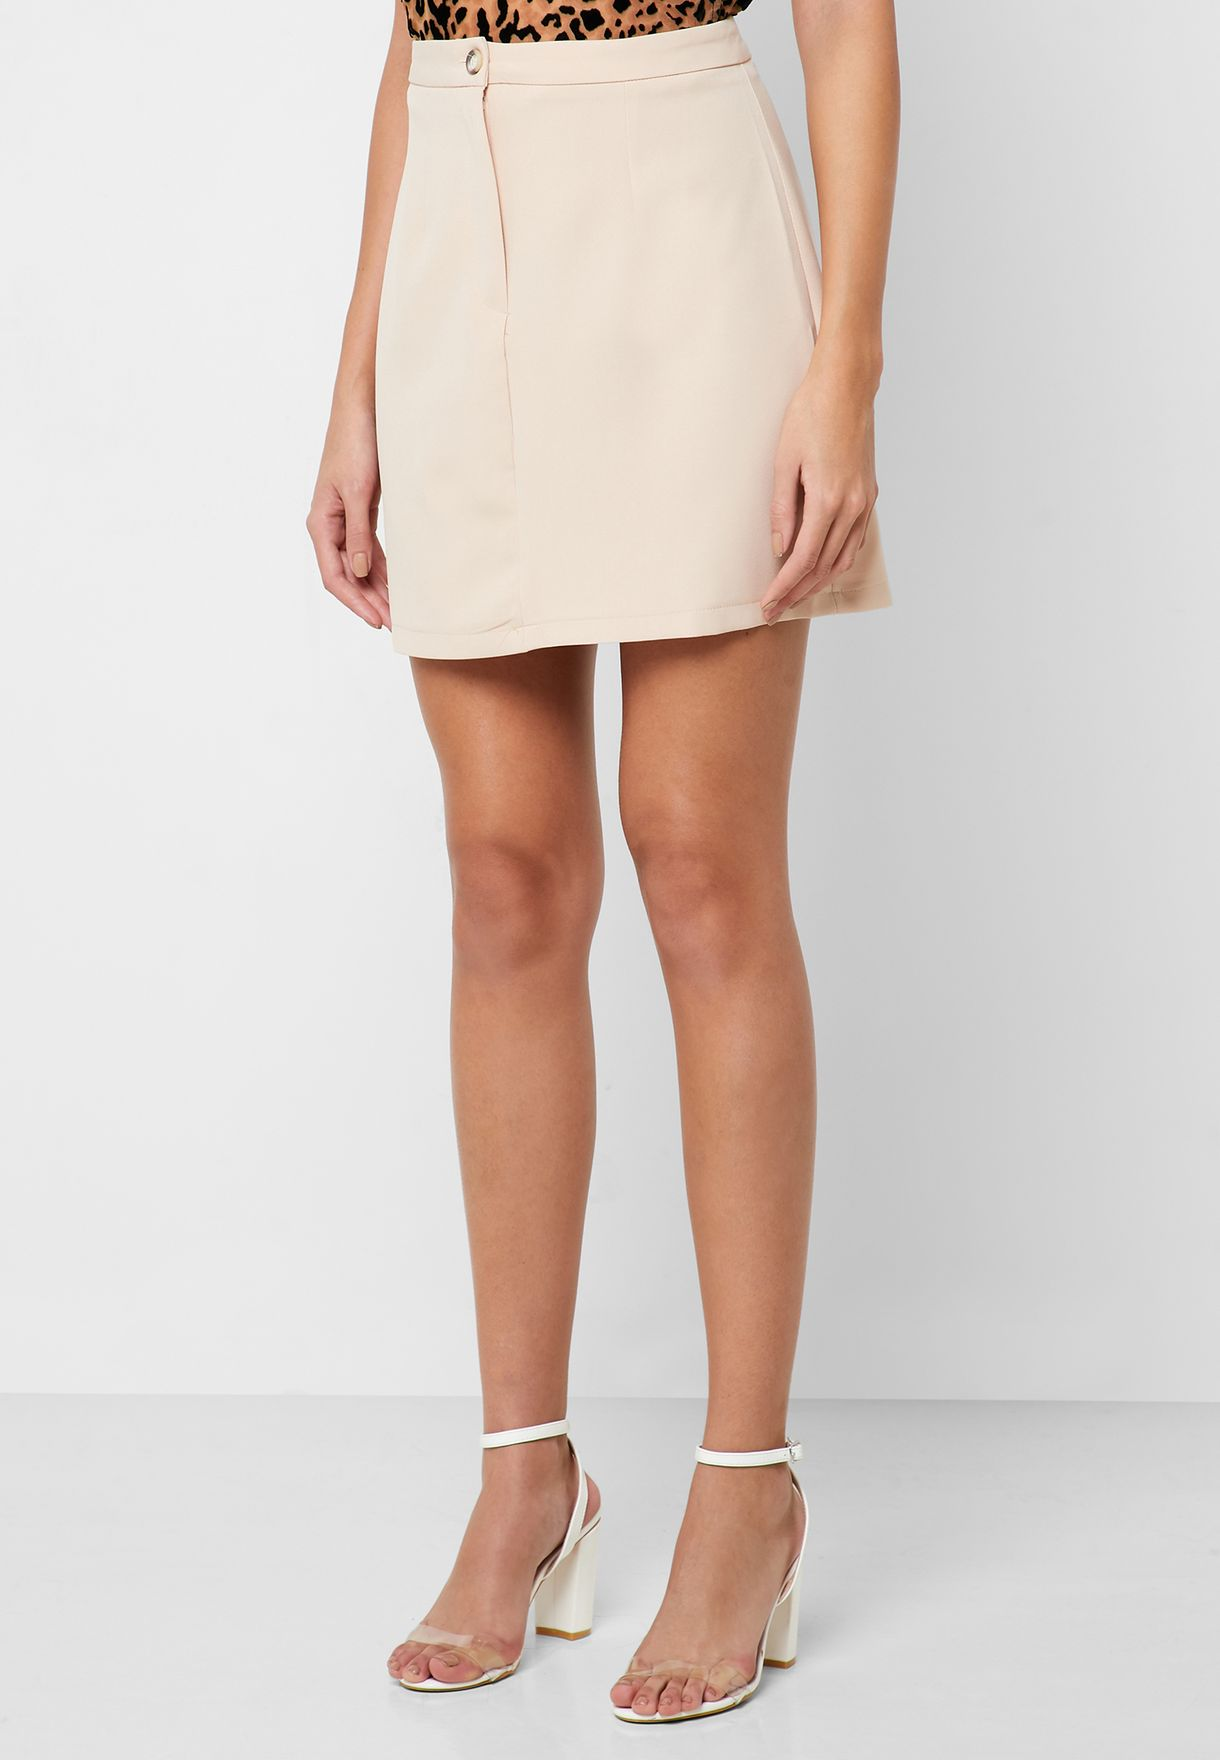 Double Breasted Tailored Mini Skirt Set